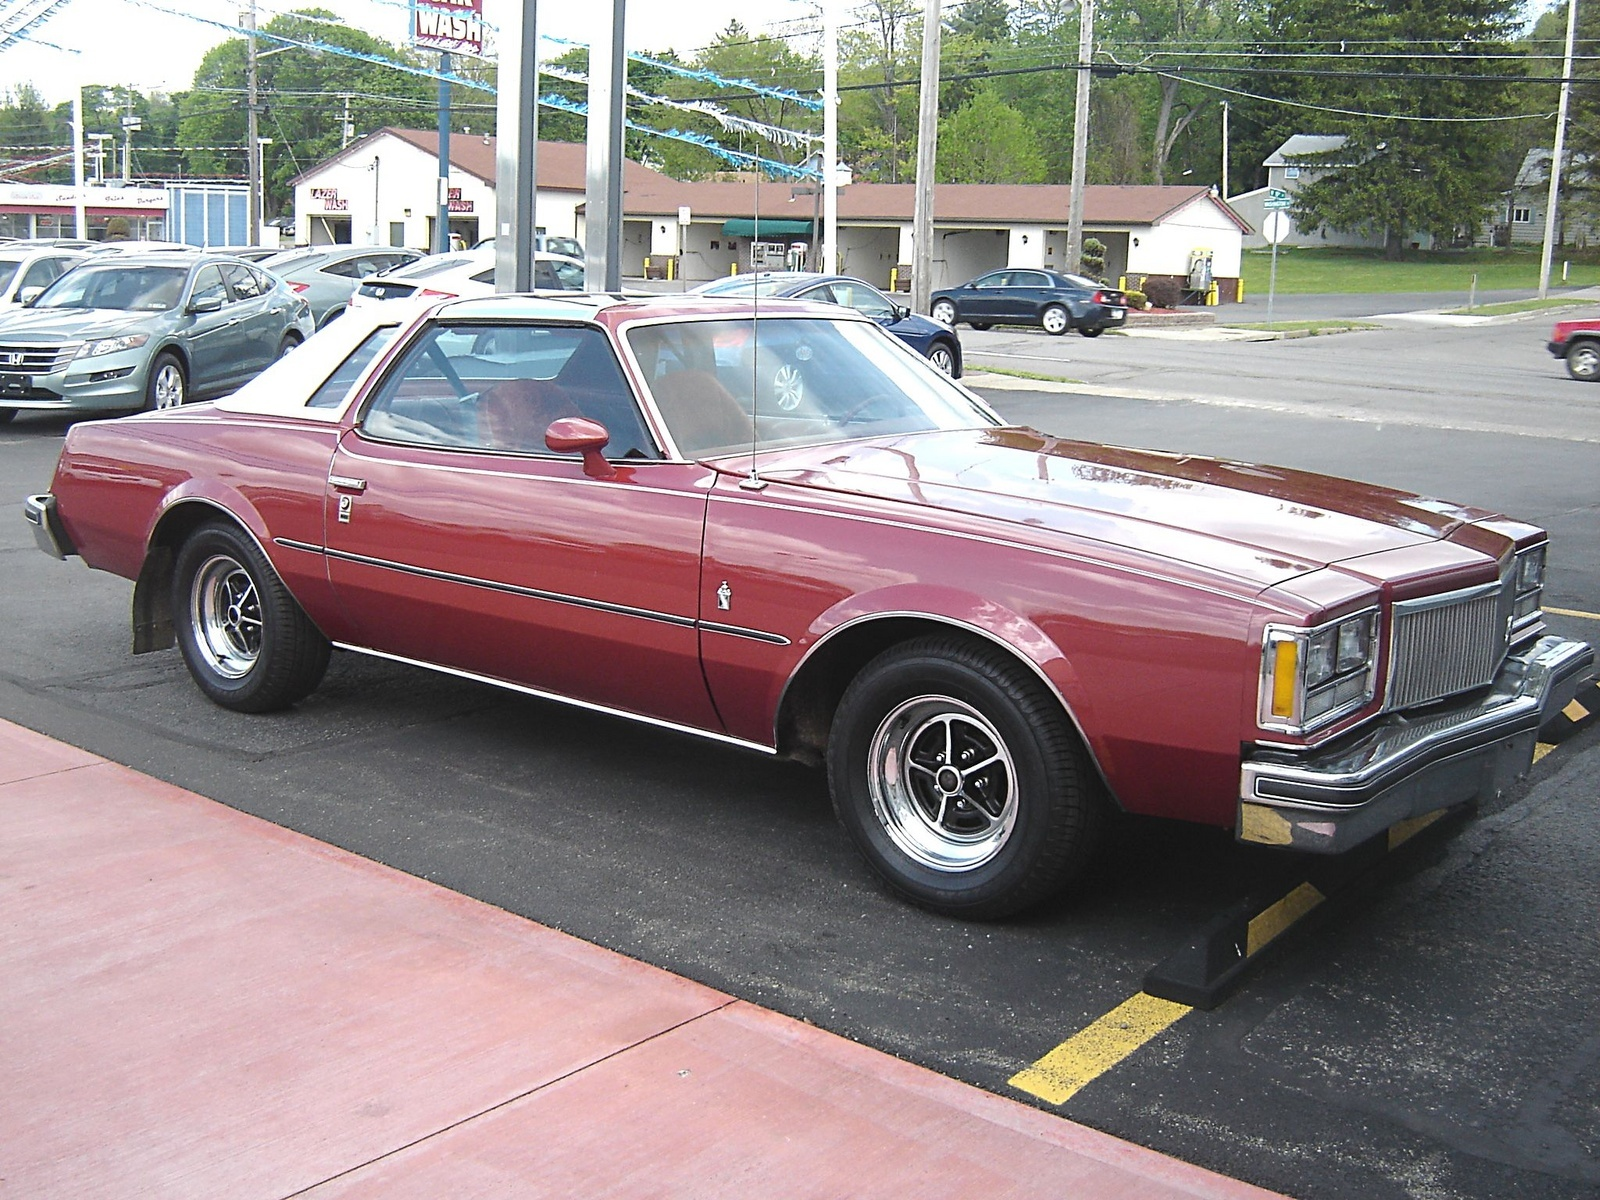 buick regal questions i have a 1976 buick regal sr with. Black Bedroom Furniture Sets. Home Design Ideas